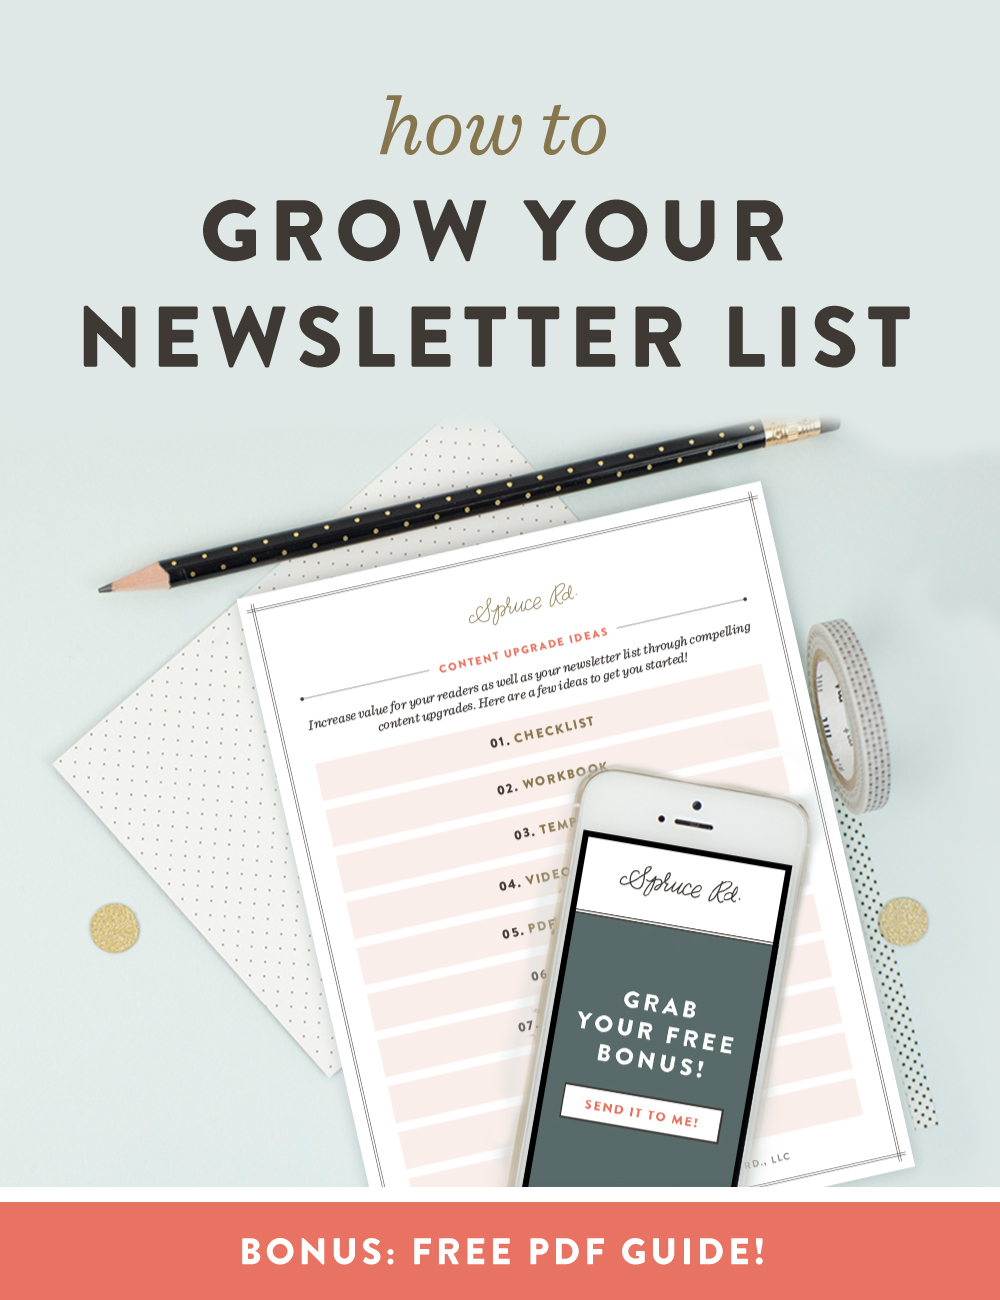 How to Grow Your Newsletter List // Are you ready to start growing your email list, but are hung up on the process? I have grown my list from 150 to 1,072 in about 60 days, primarily through content upgrades. I am sharing my secrets on how to grow your list (including freebies, LeadPages, Mailchimp, etc), as well as a FREE download of my top 10 favorite content upgrade ideas!